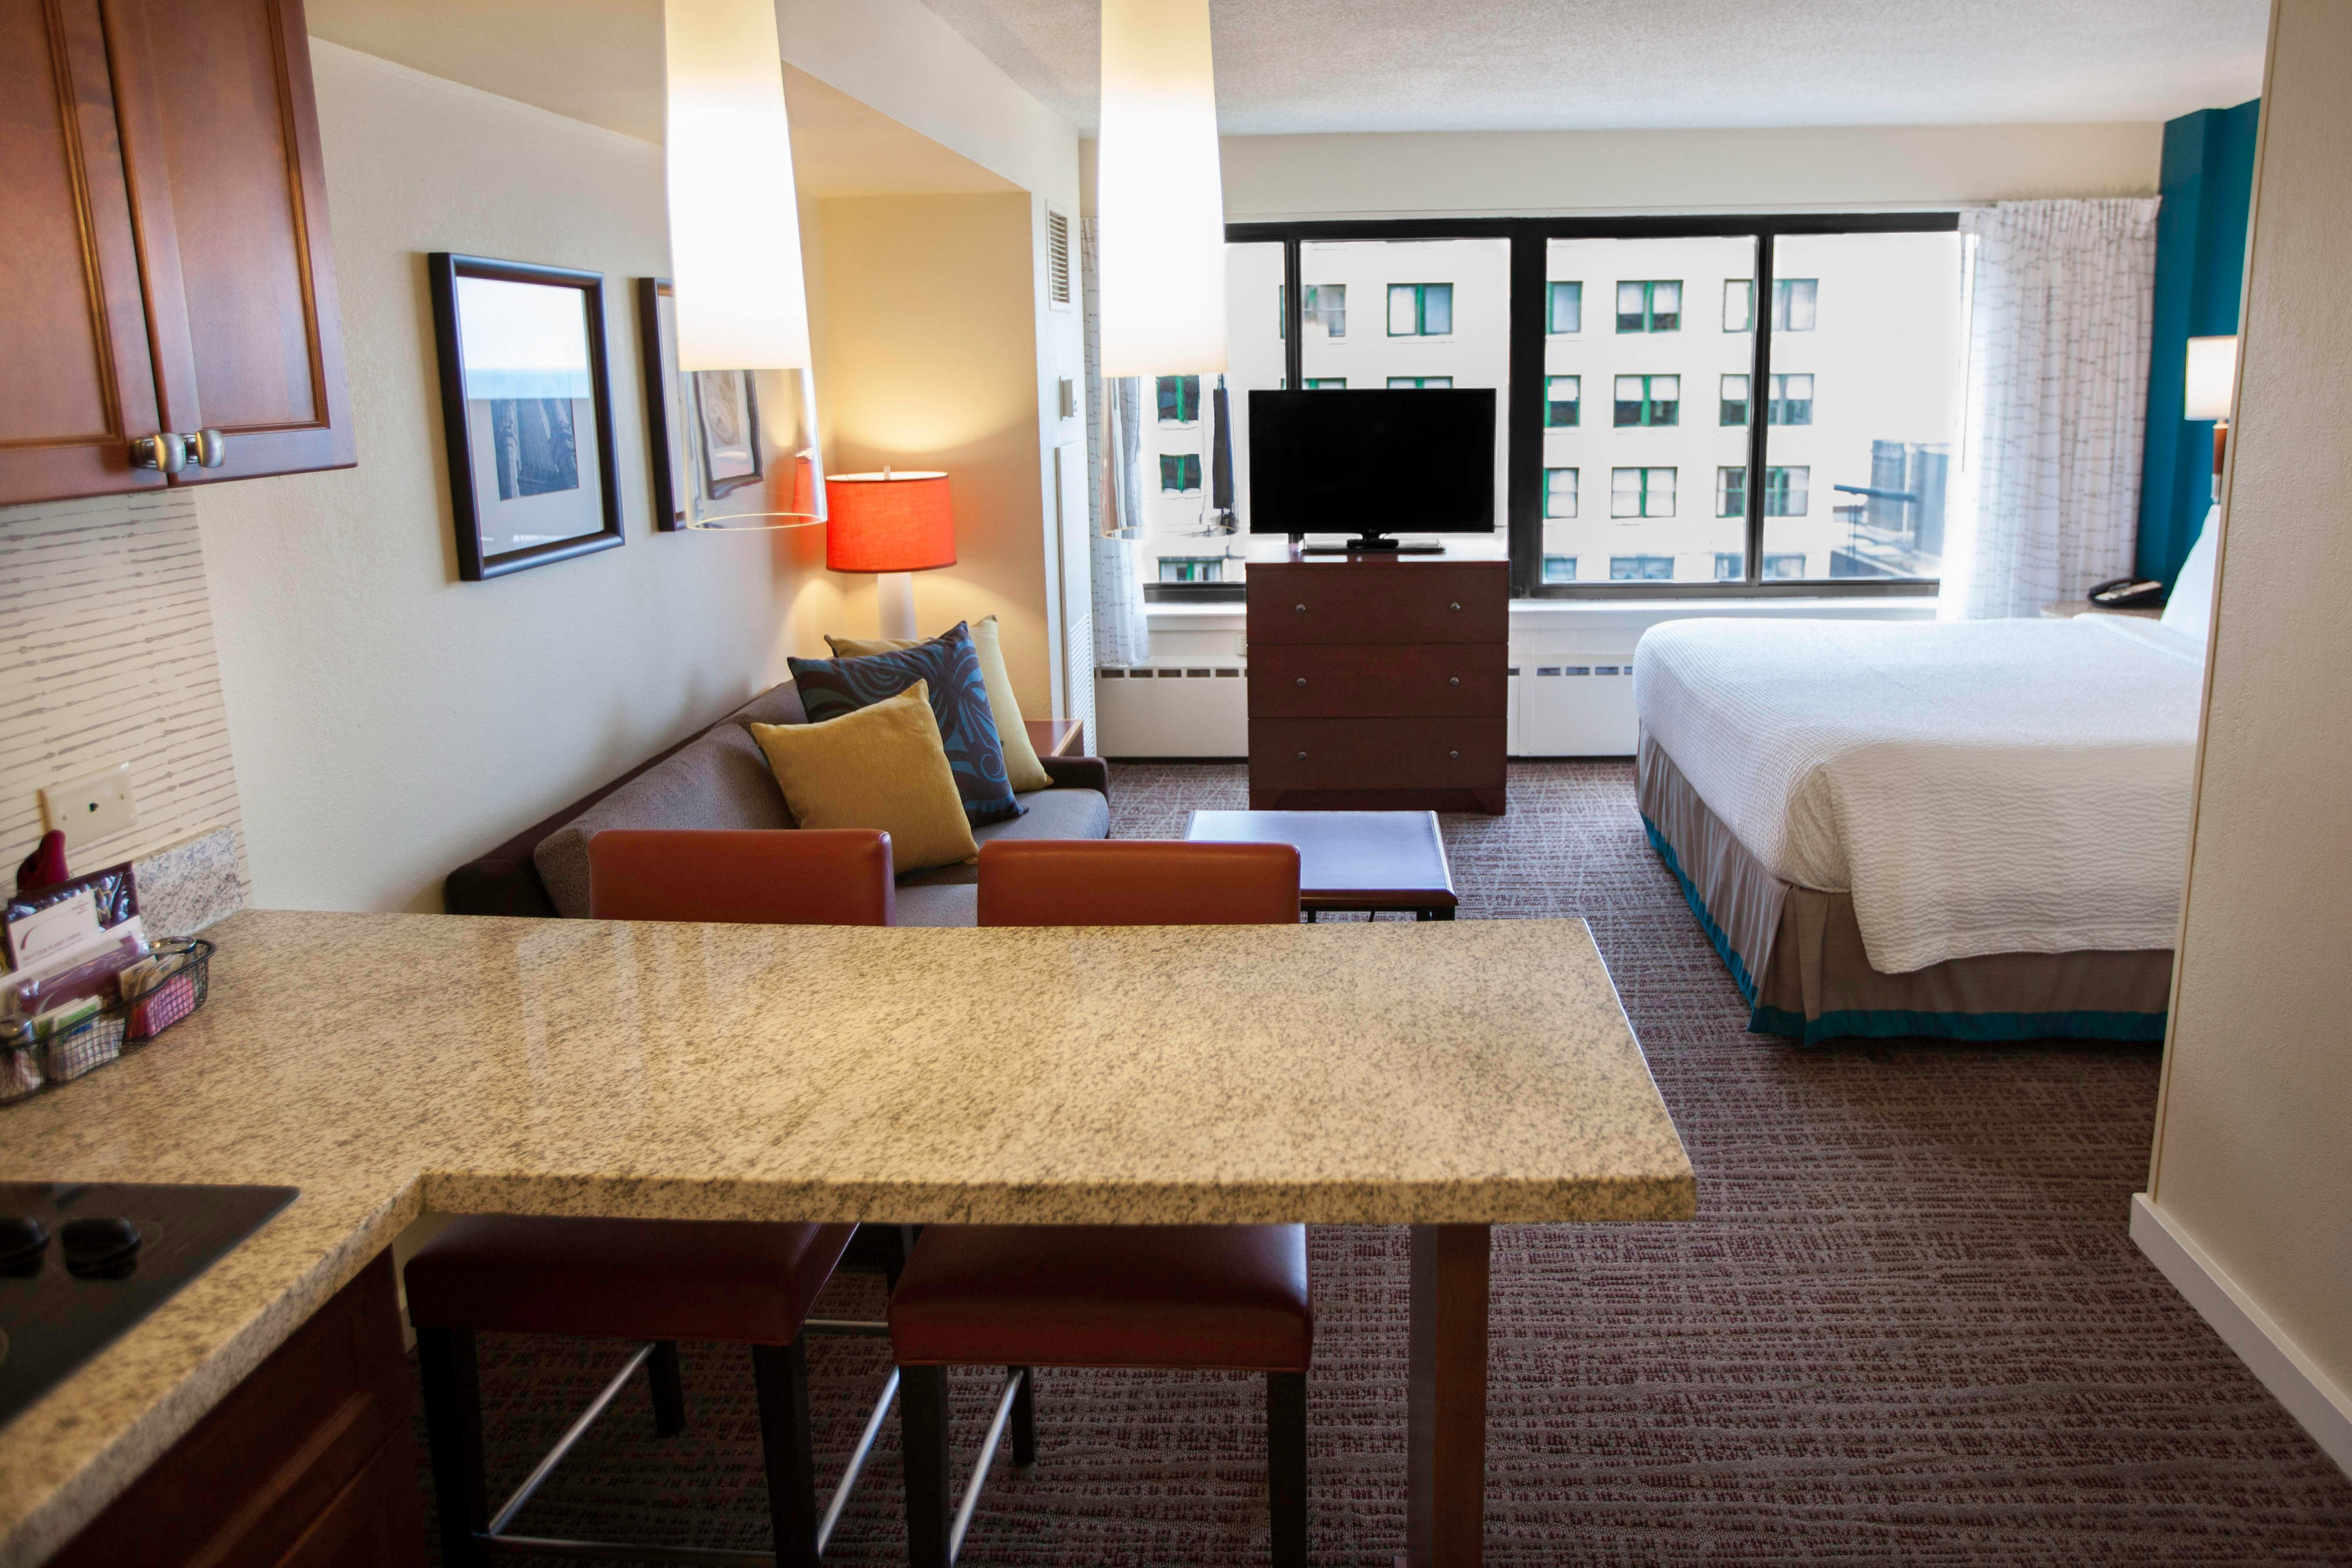 Magnificent Mile Hotels Residence Inn Chicago Downtown